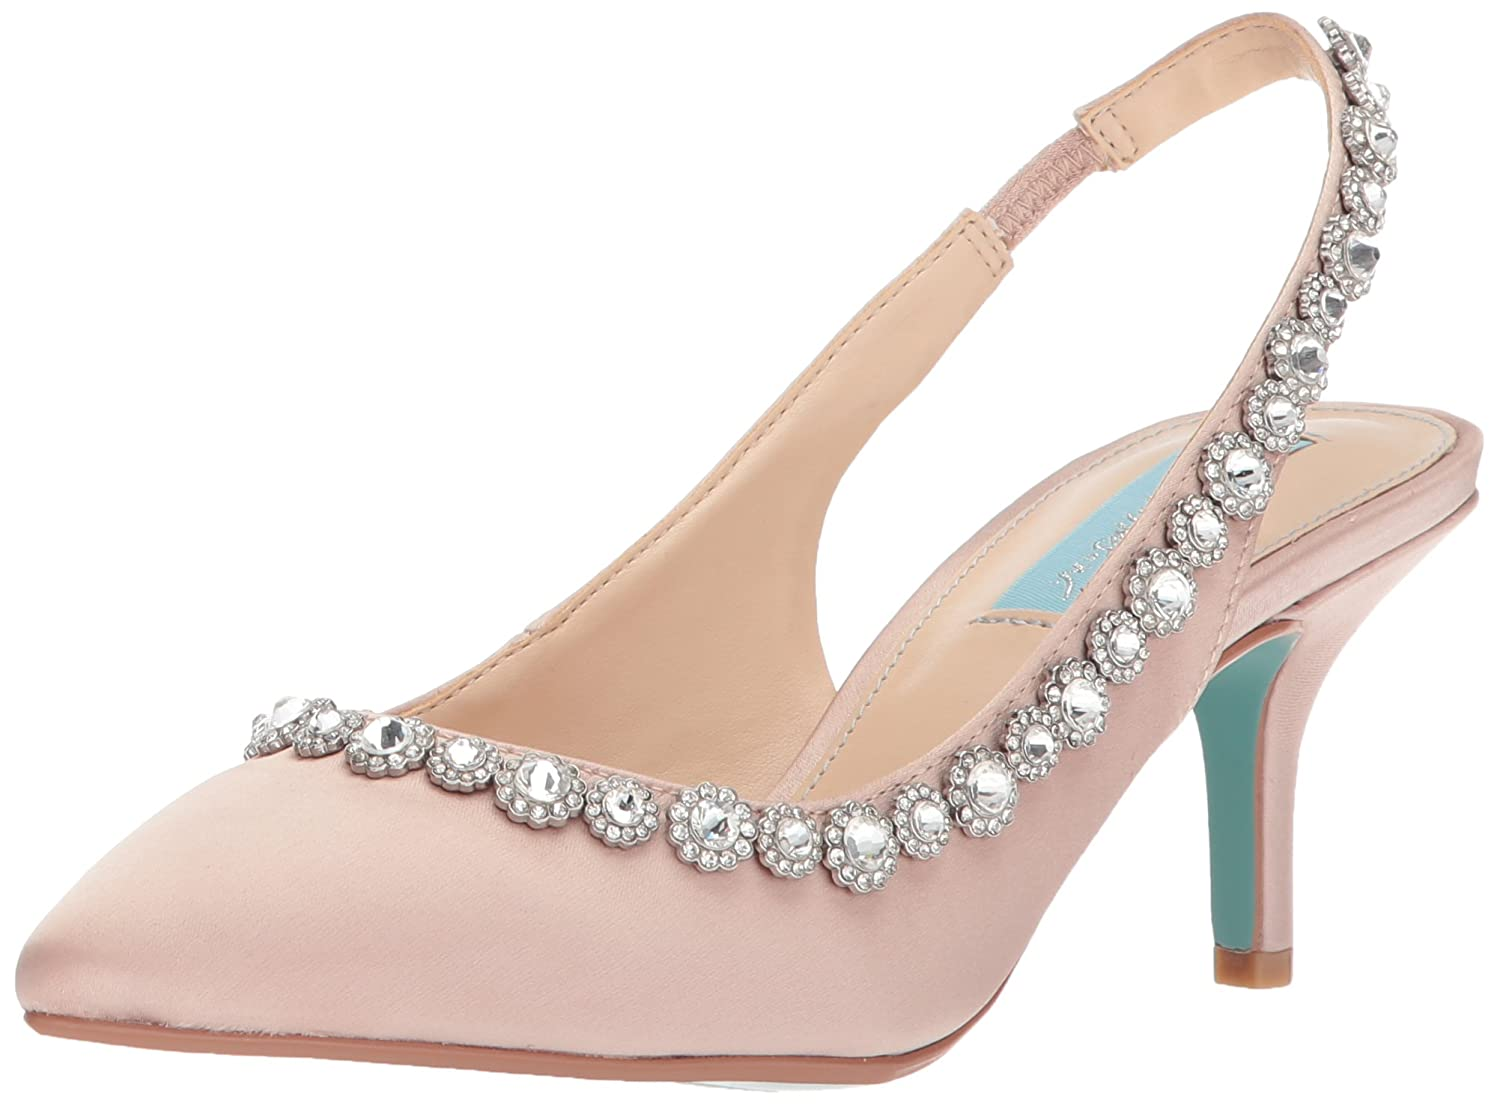 Blue by Betsey Johnson Women's SB-Cici Pump B0757N314Y 6.5 M US|Nude Satin